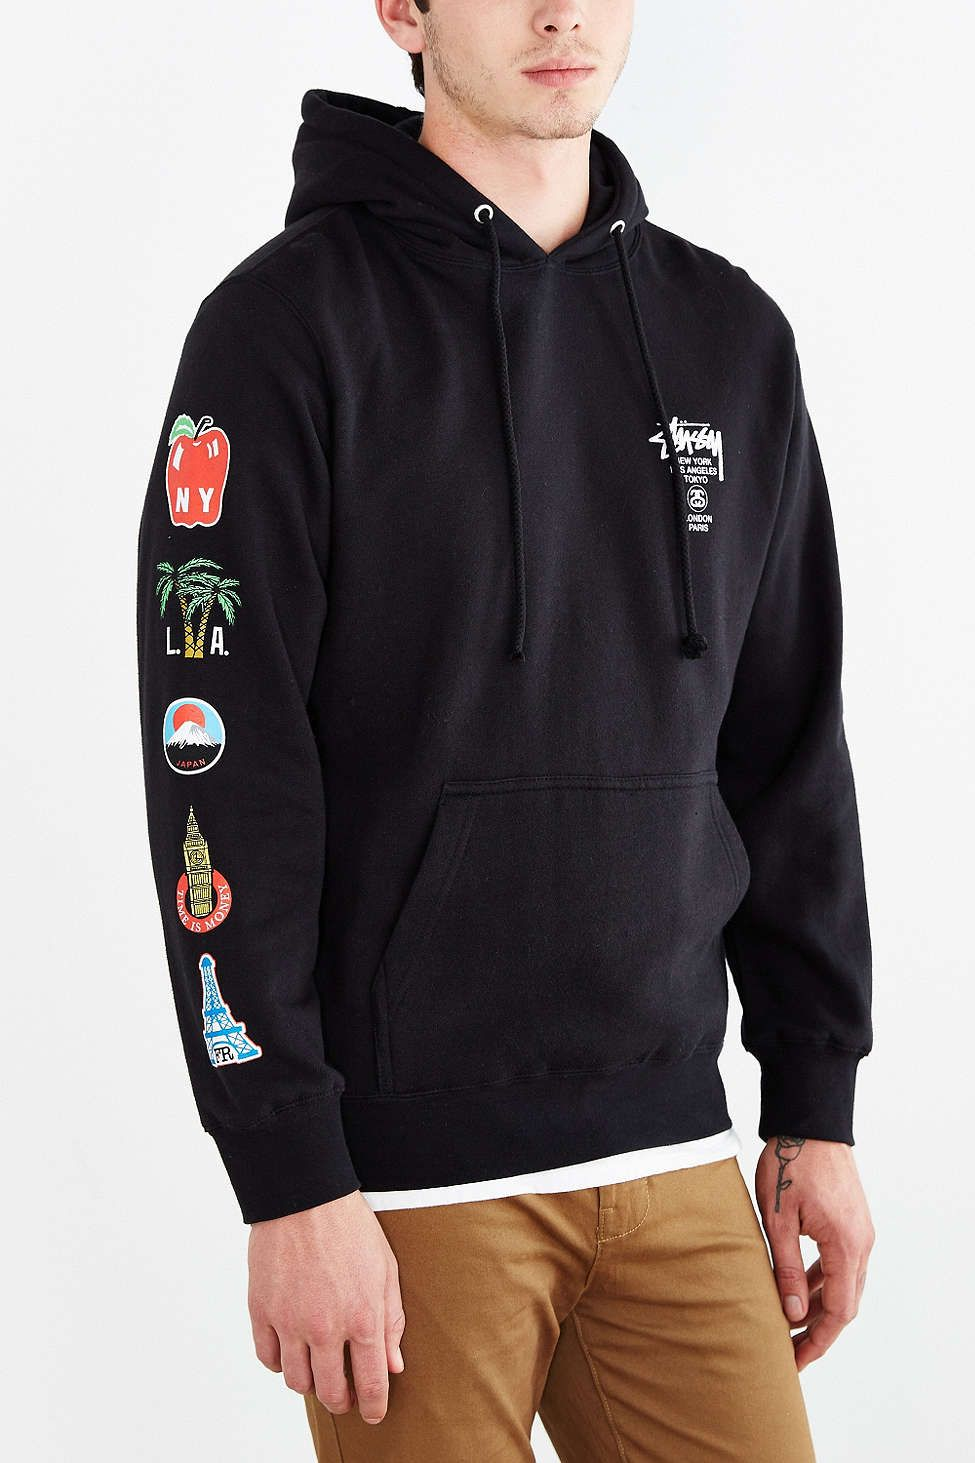 a7a5b1033166 Stussy World Tour Flags Pullover Hoodie Sweatshirt